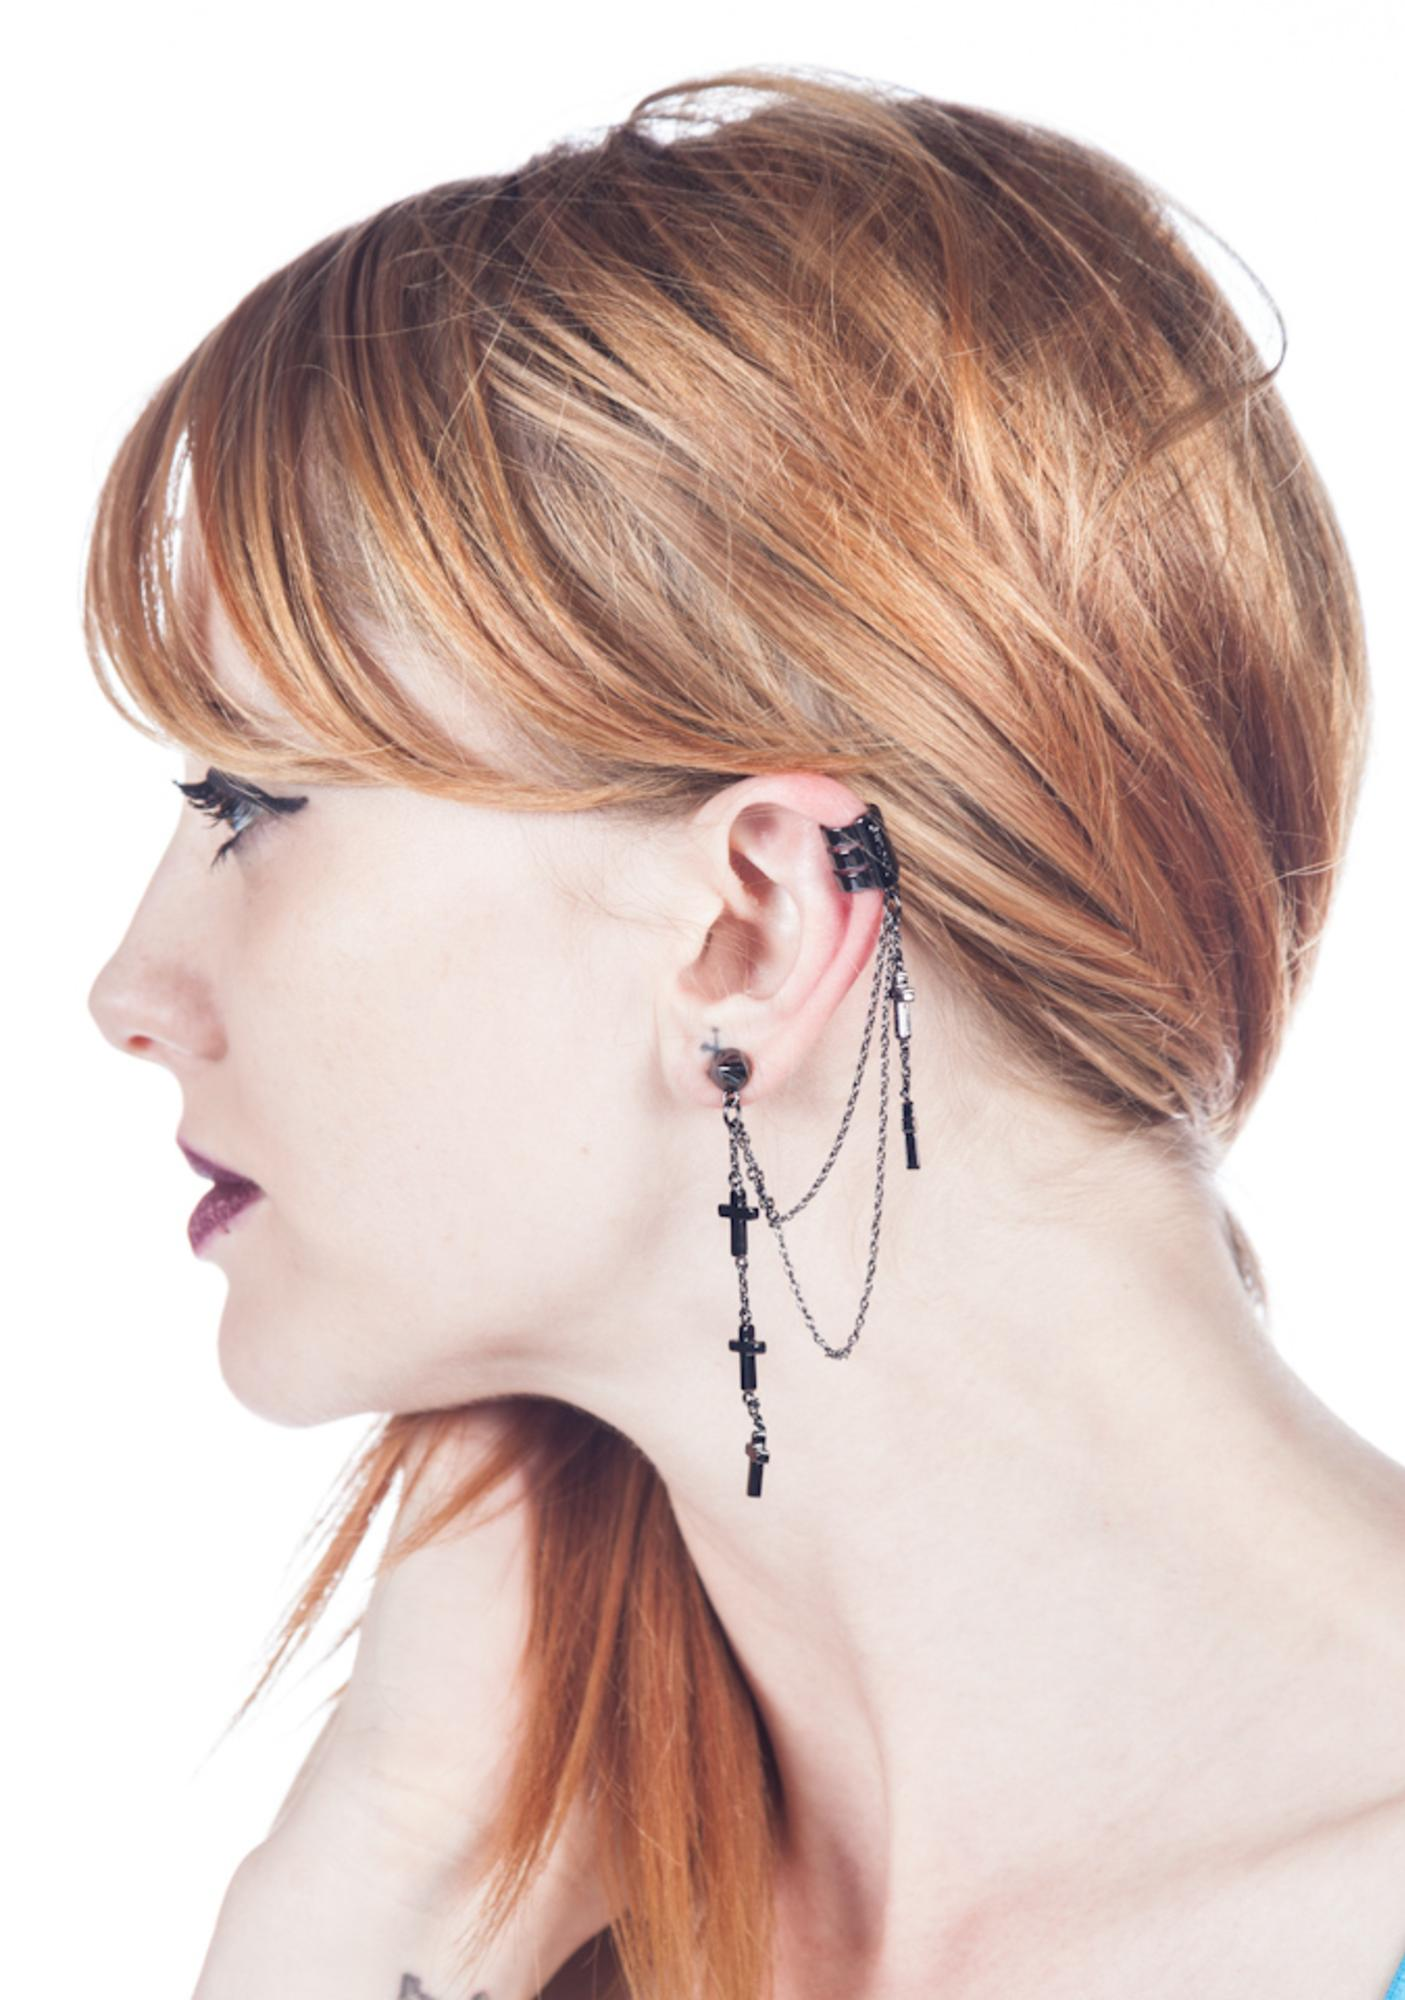 Wildfox Couture Black Hematite Cross Stud Earring and Cuff